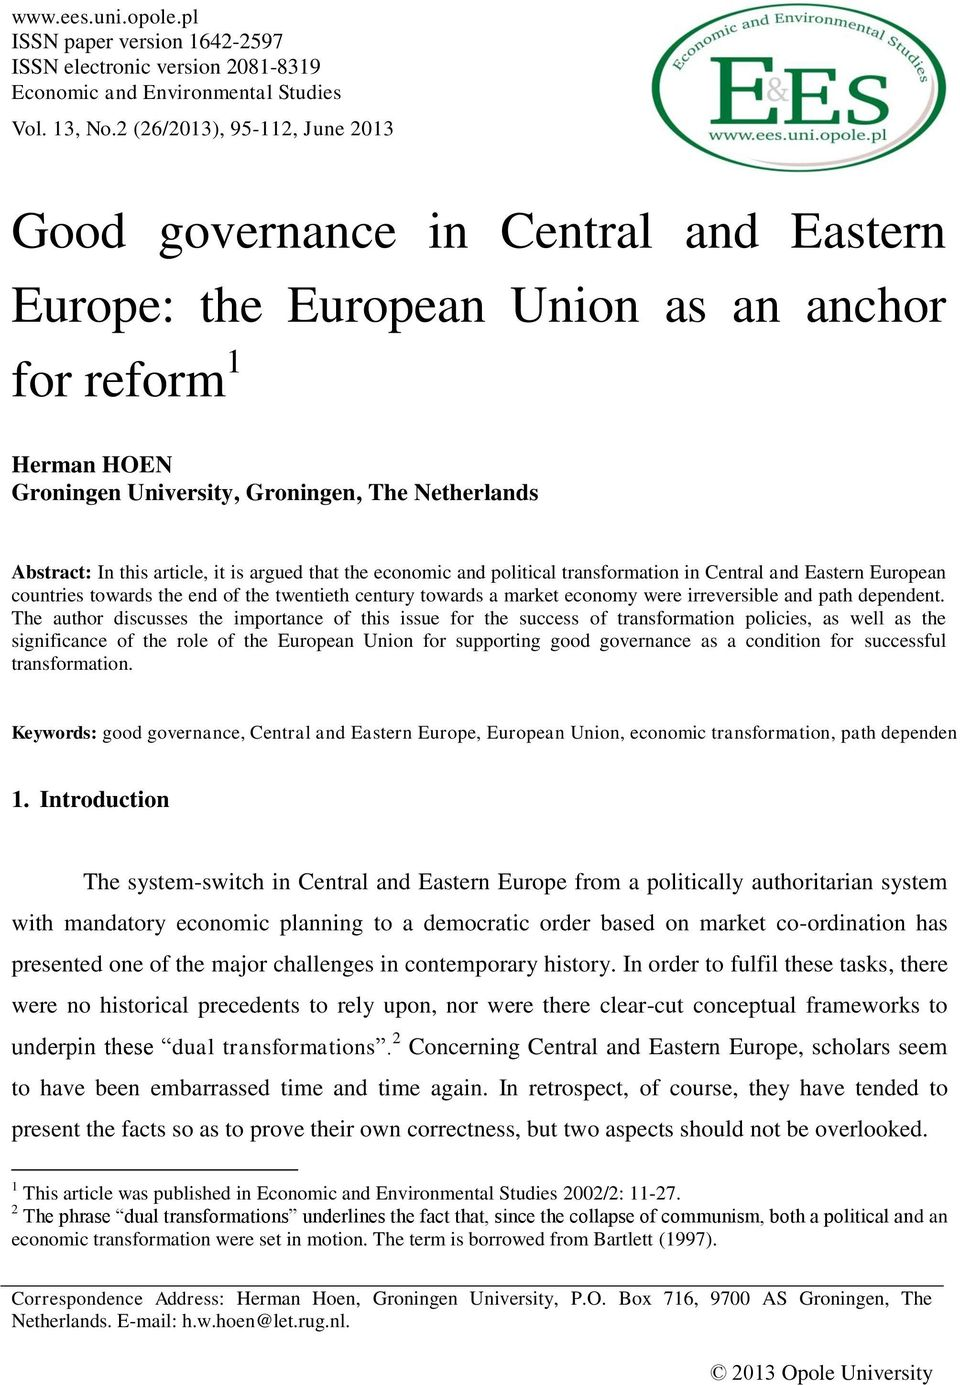 this article, it is argued that the economic and political transformation in Central and Eastern European countries towards the end of the twentieth century towards a market economy were irreversible